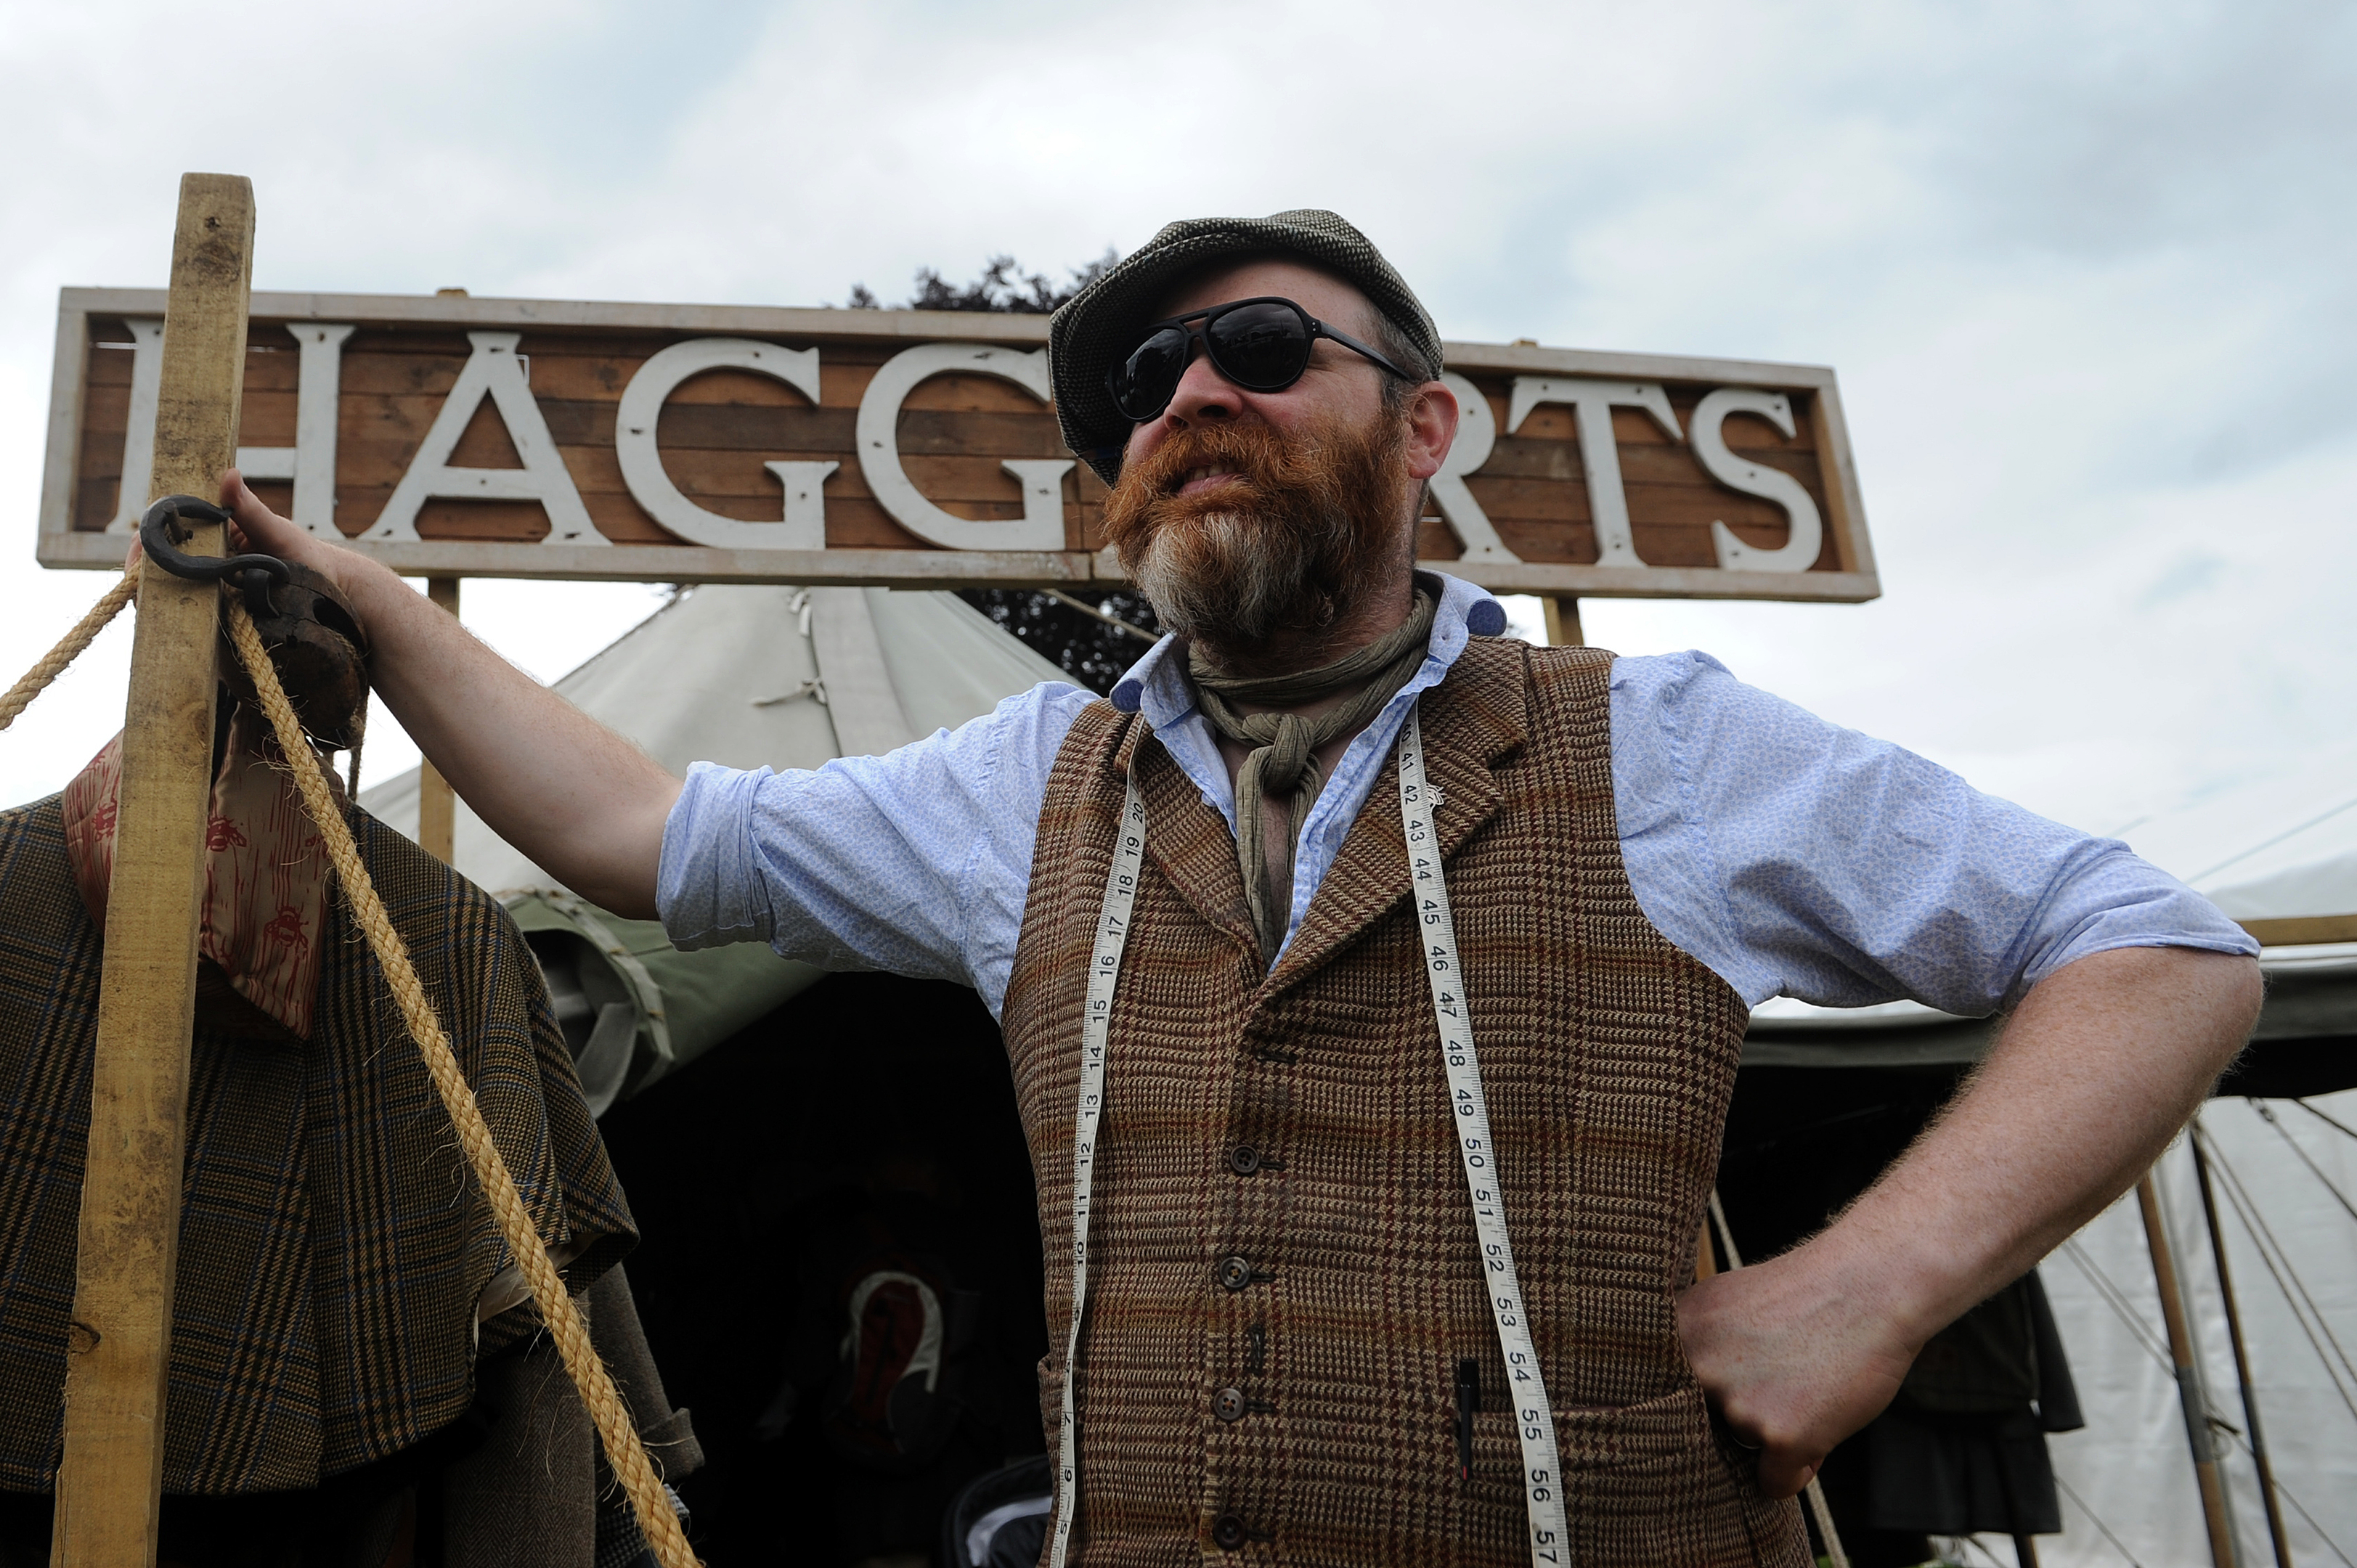 yan Hannigan ready to measure up customers to his Haggart's tent.